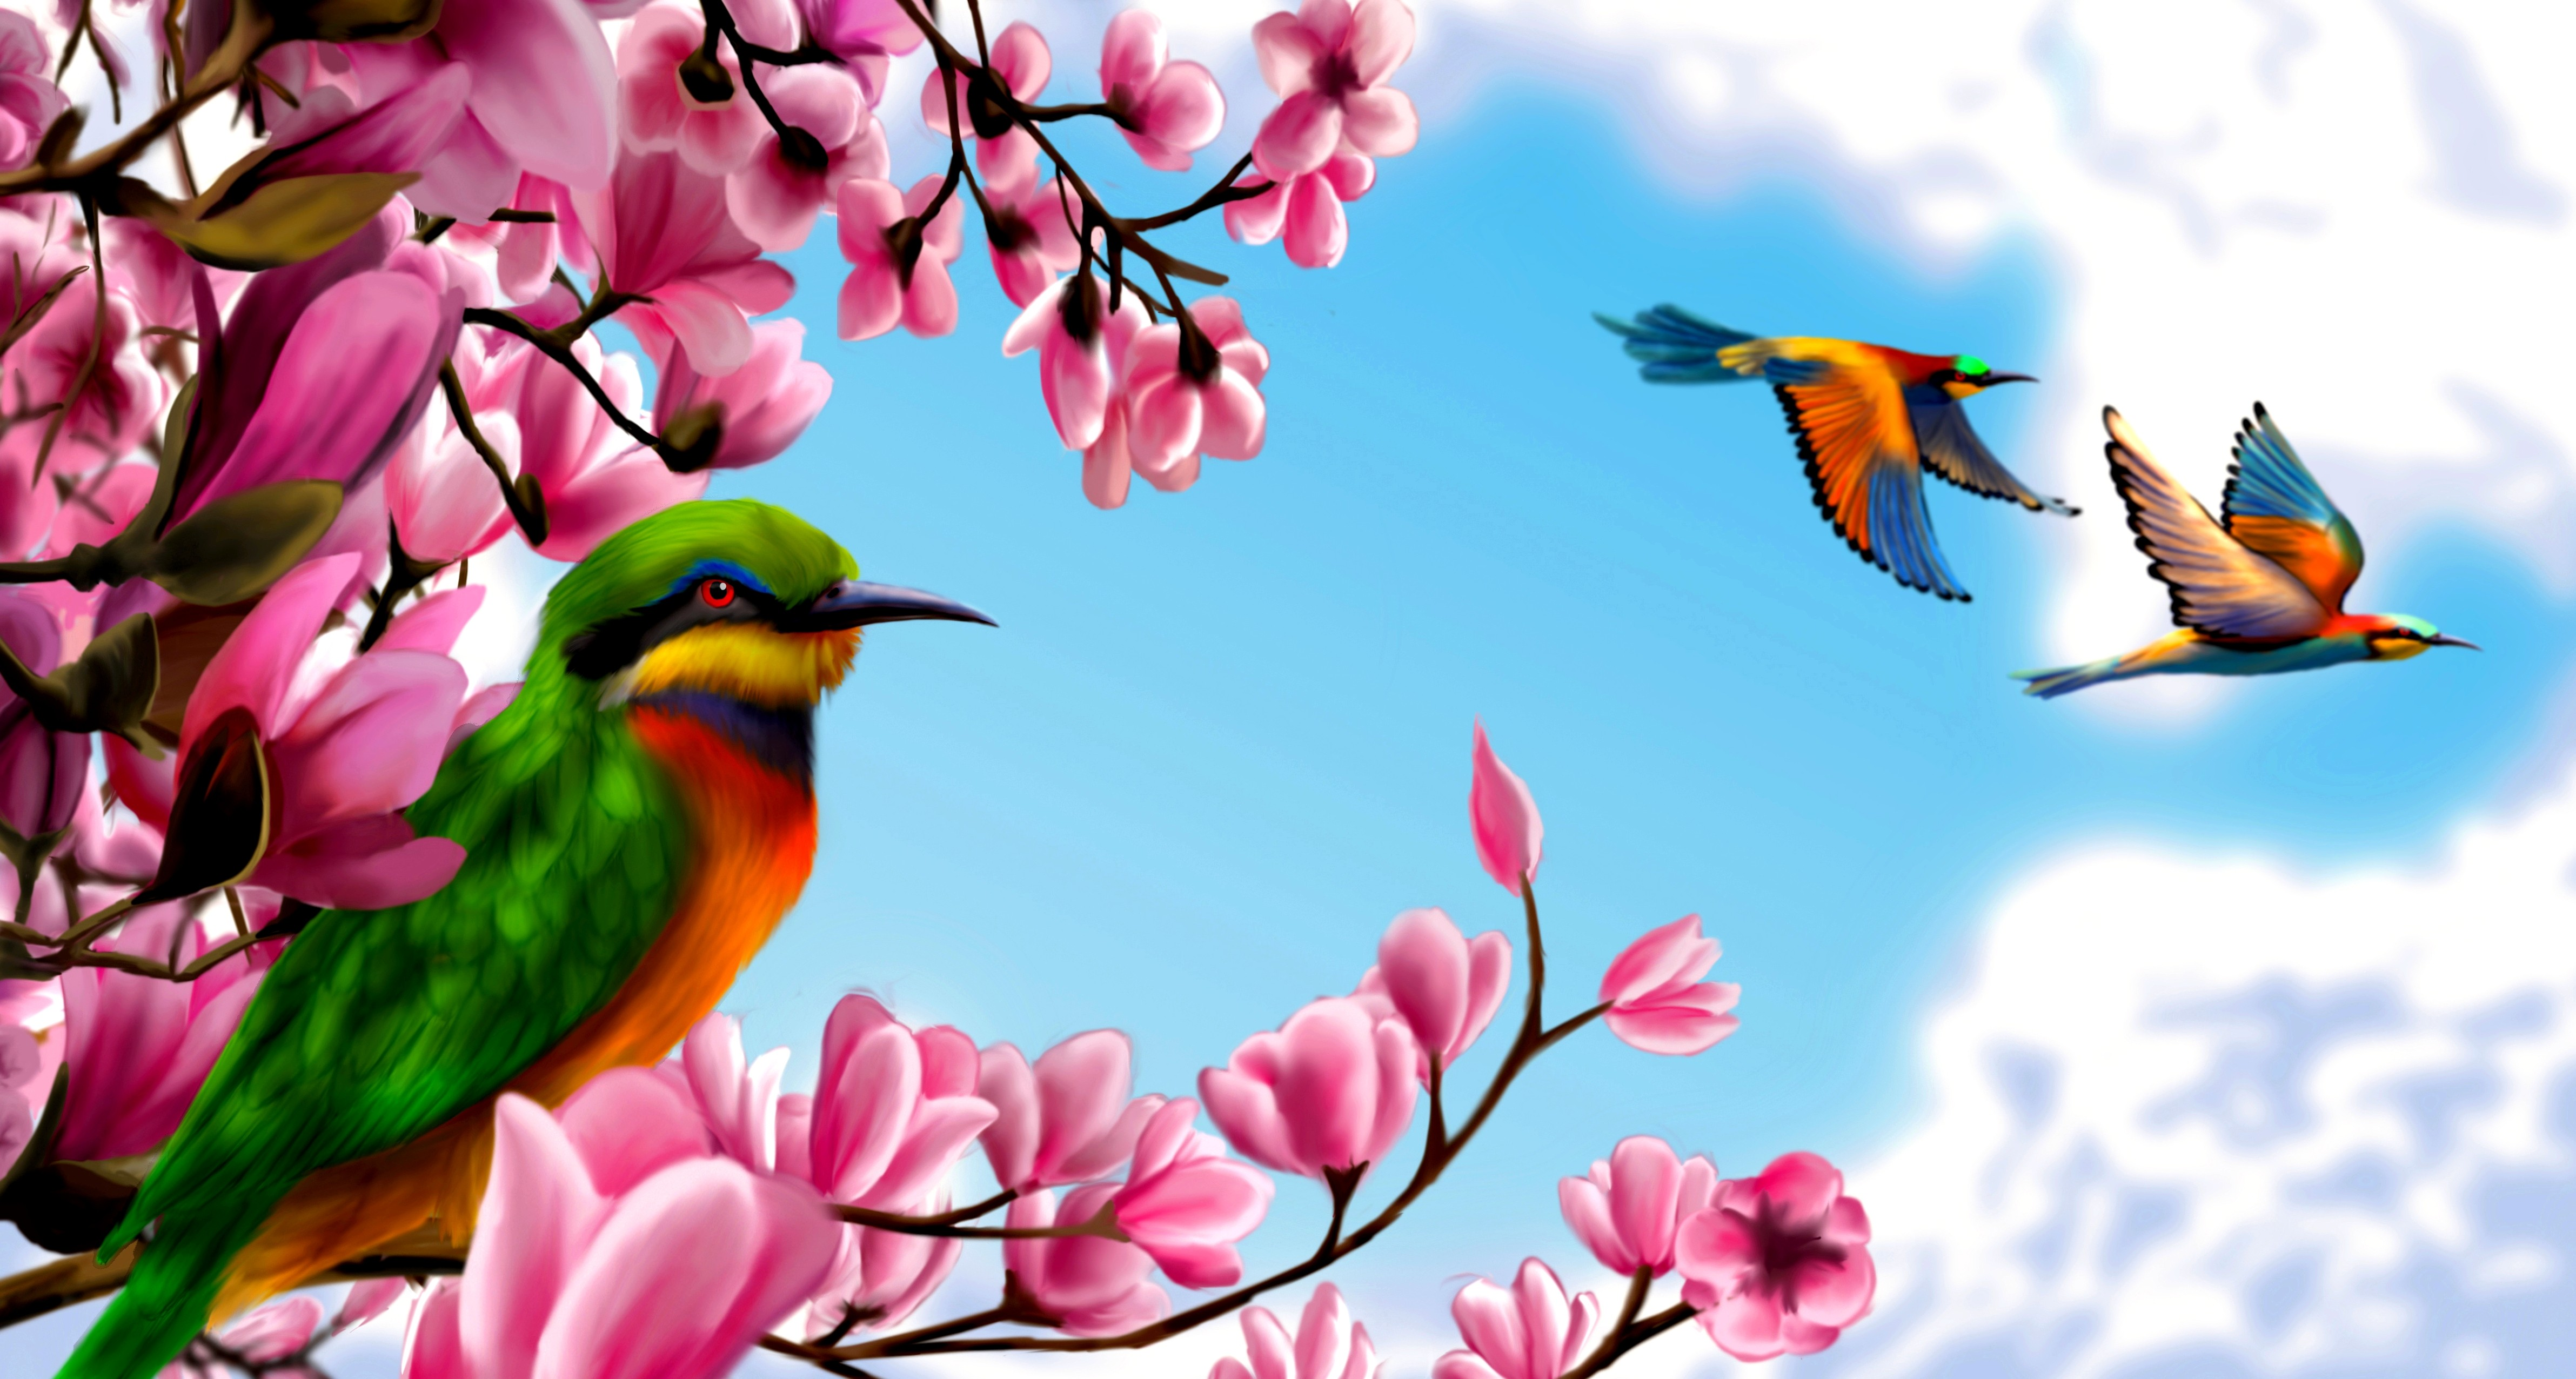 Birds In Paradise Wallpaper